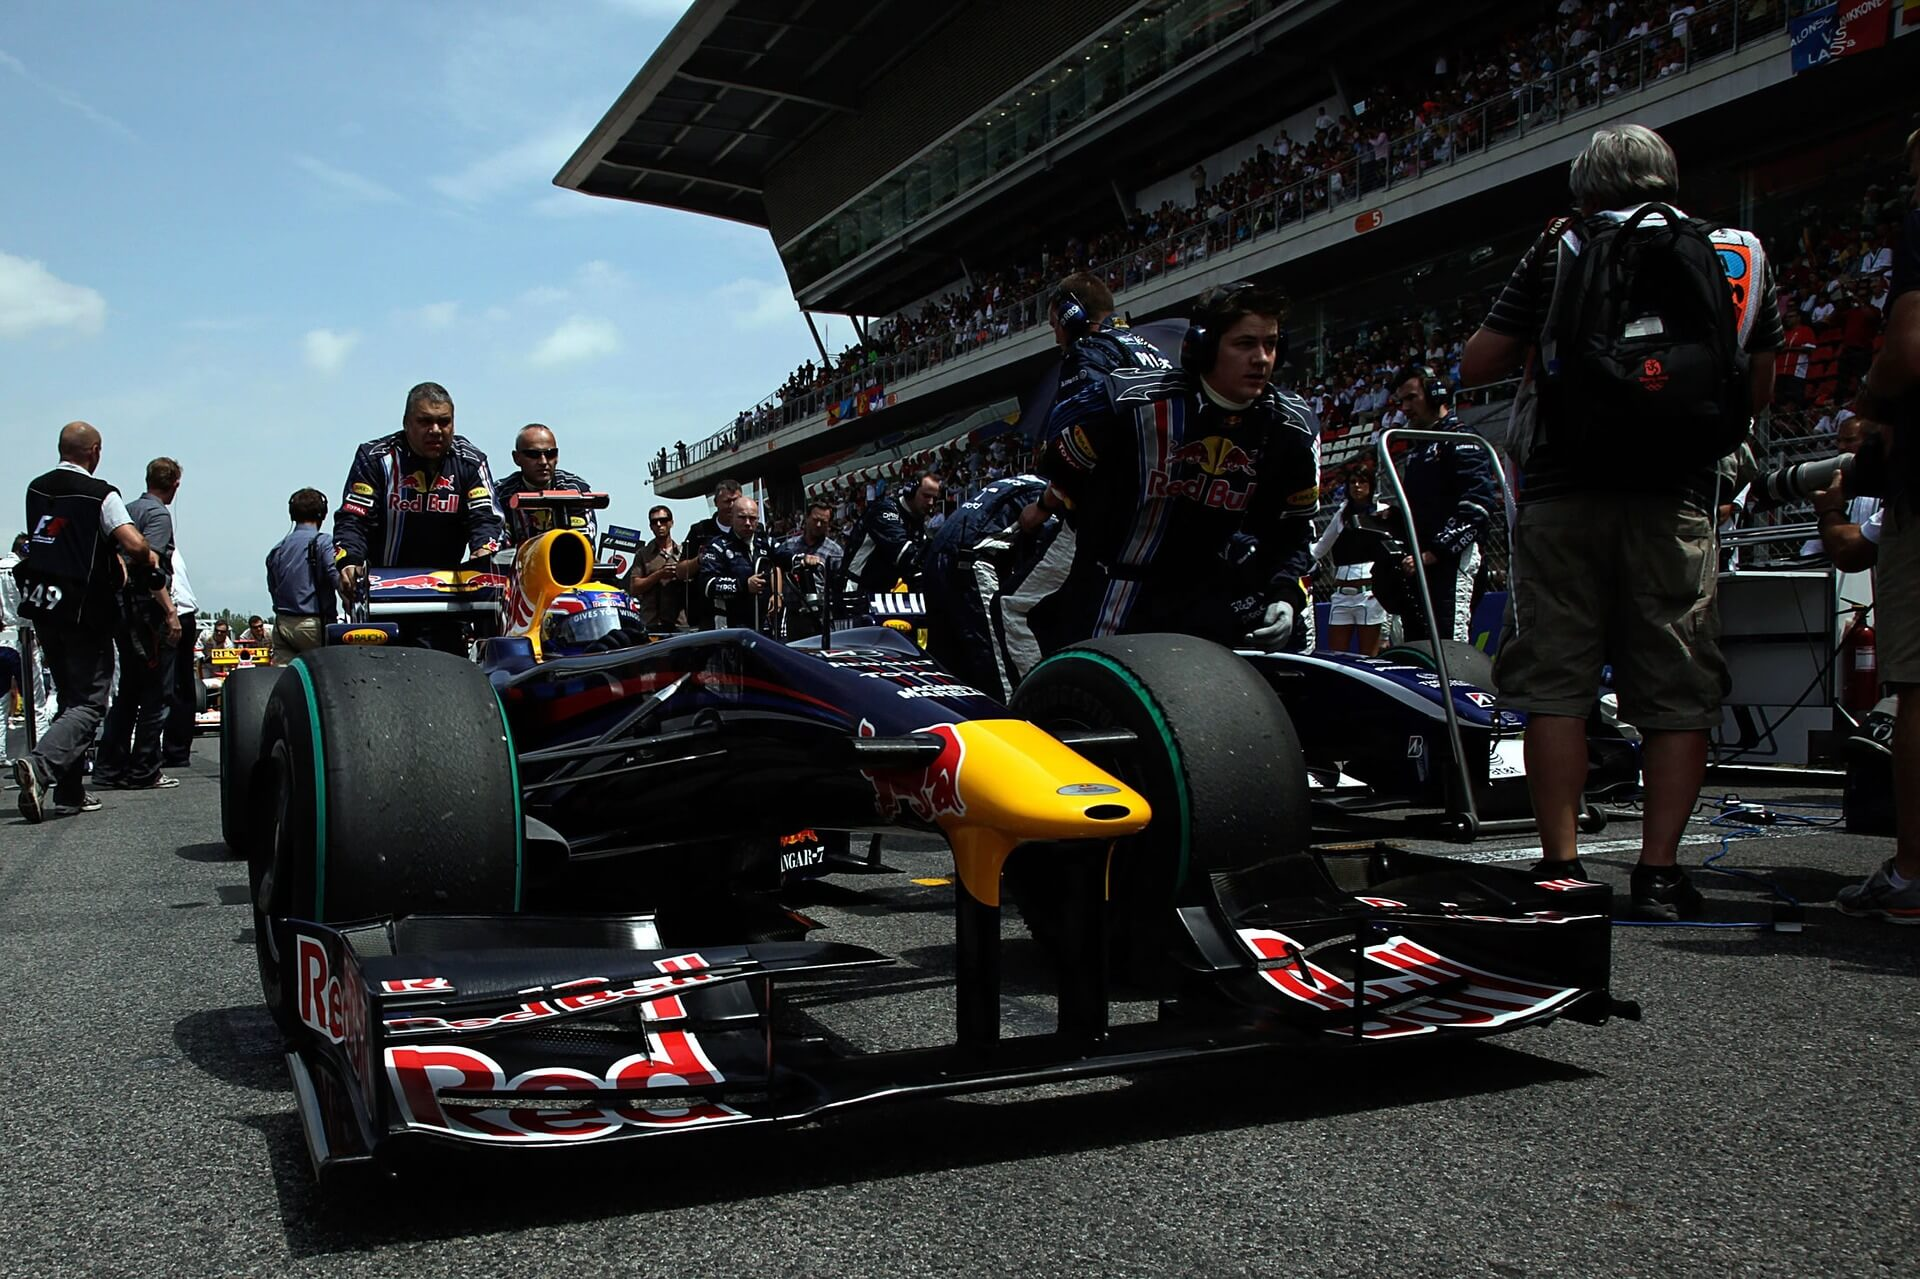 TroopTravel - Optimizing multi-origin group travel for your formula one experience